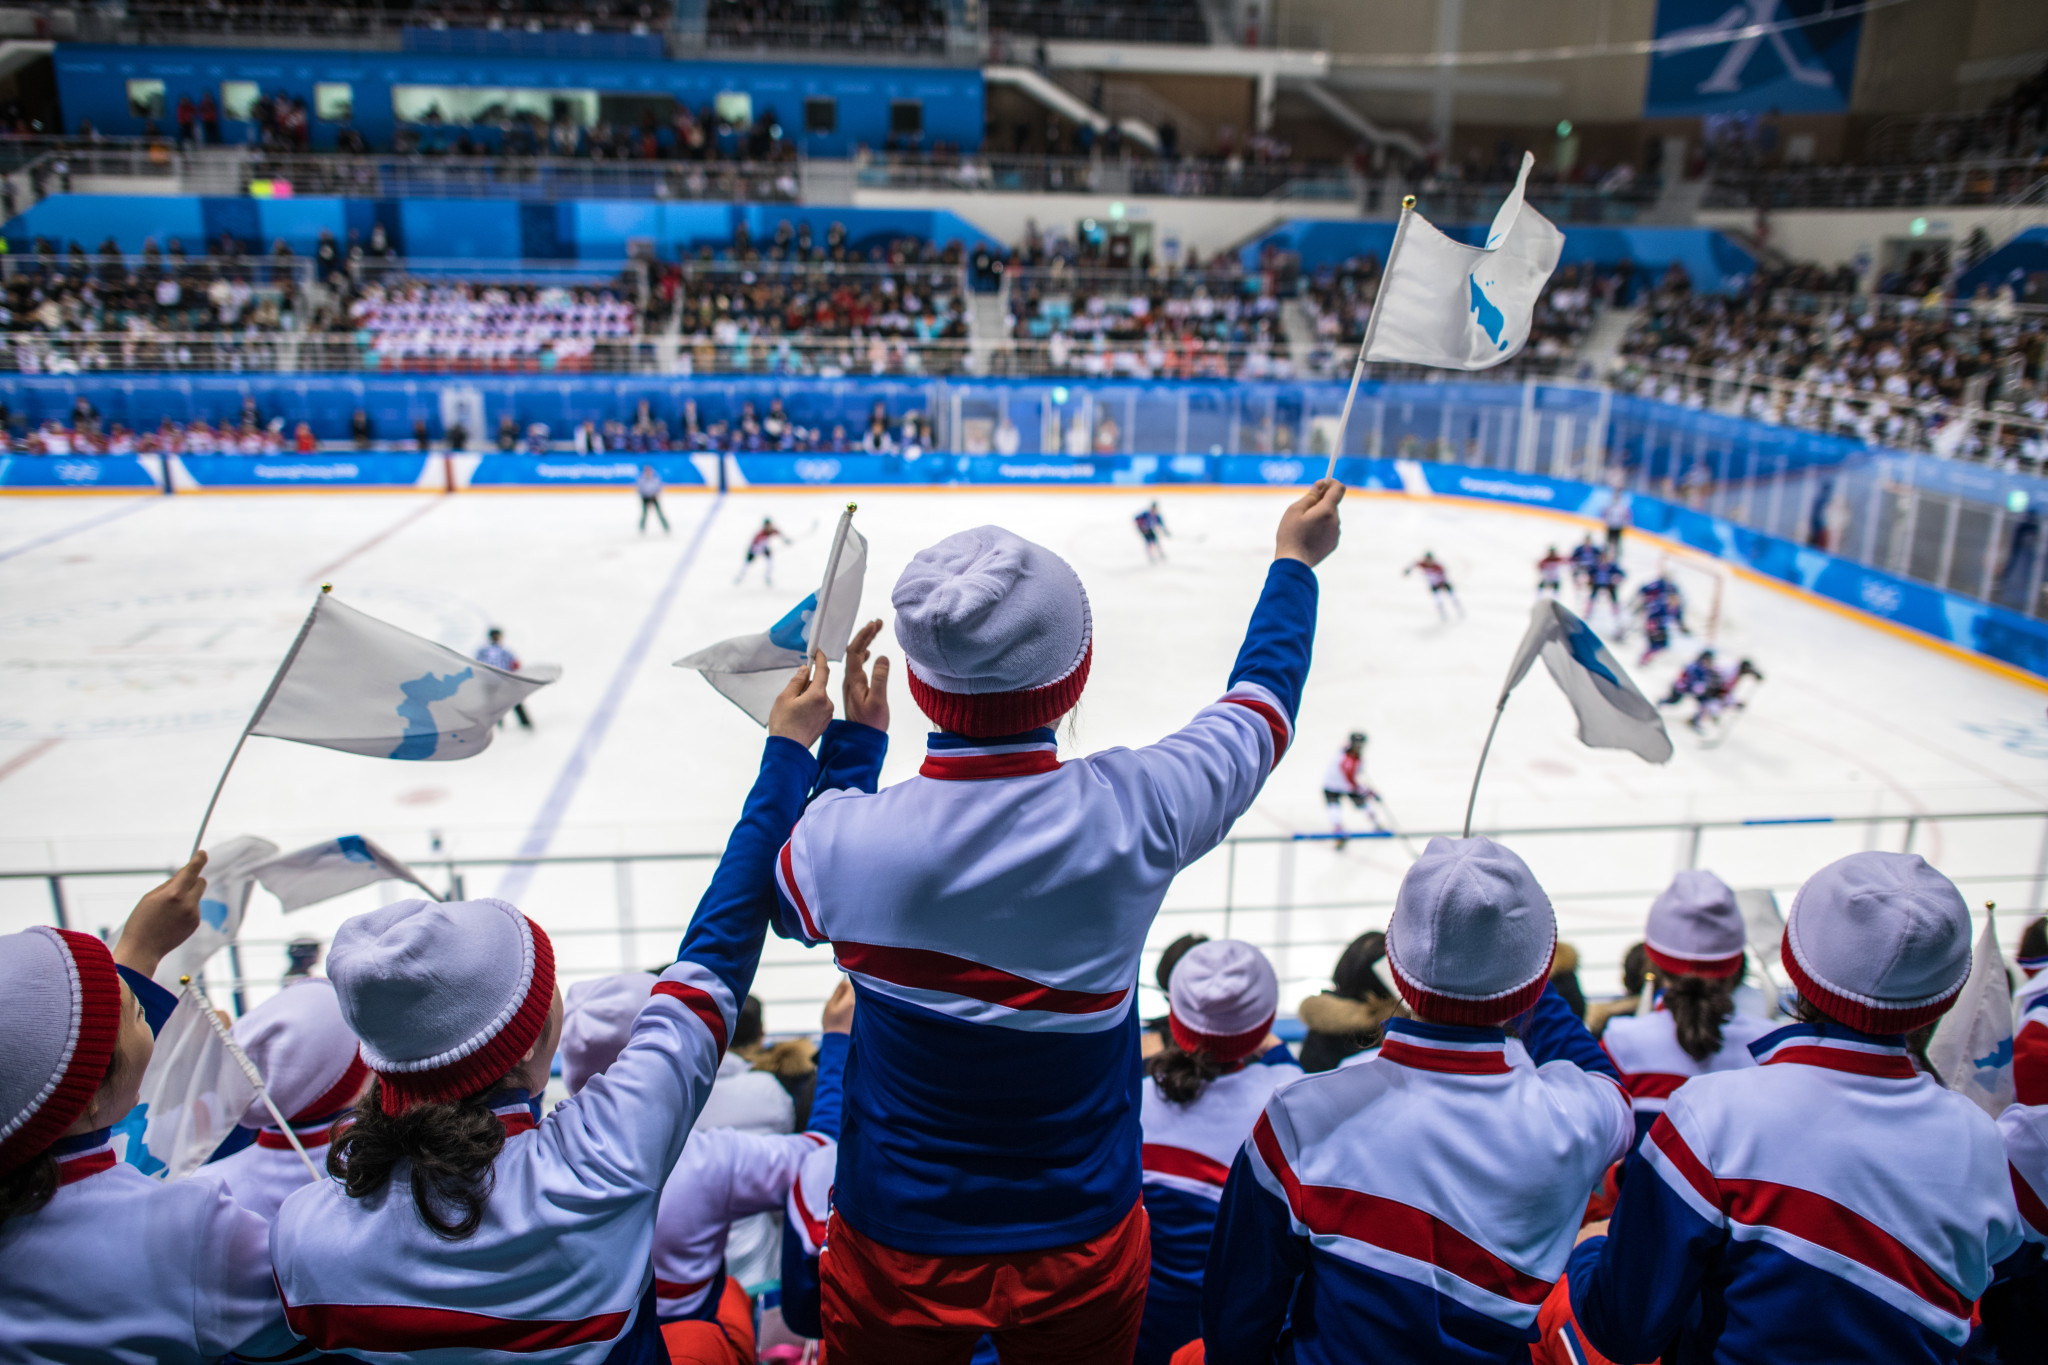 A unified Korean women's ice hockey team took part at the 2018 Winter Olympics in Pyeongchang ©Getty Images